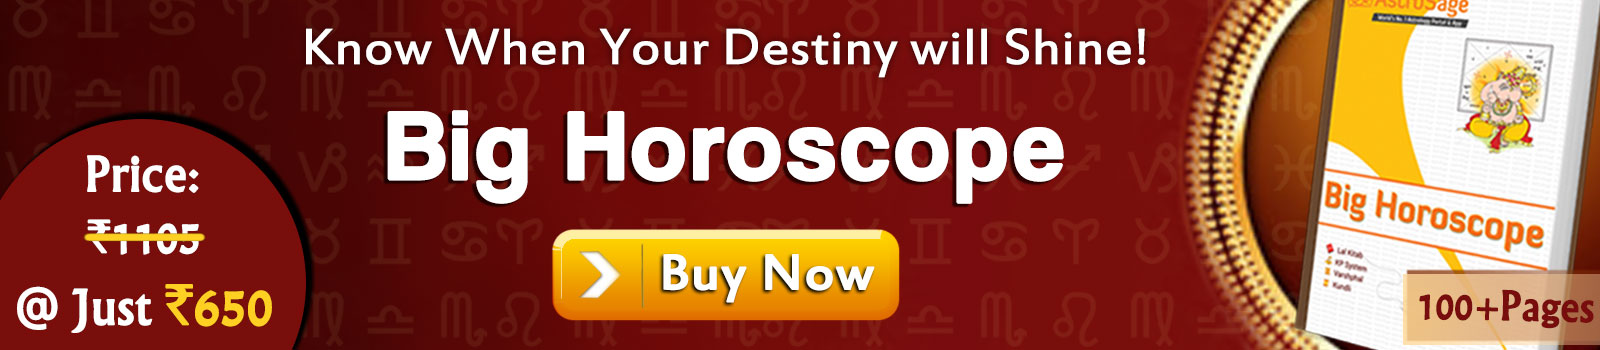 http://www.astrosage.com/offer/big-horoscope.asp?prtnr_id=BLGEN